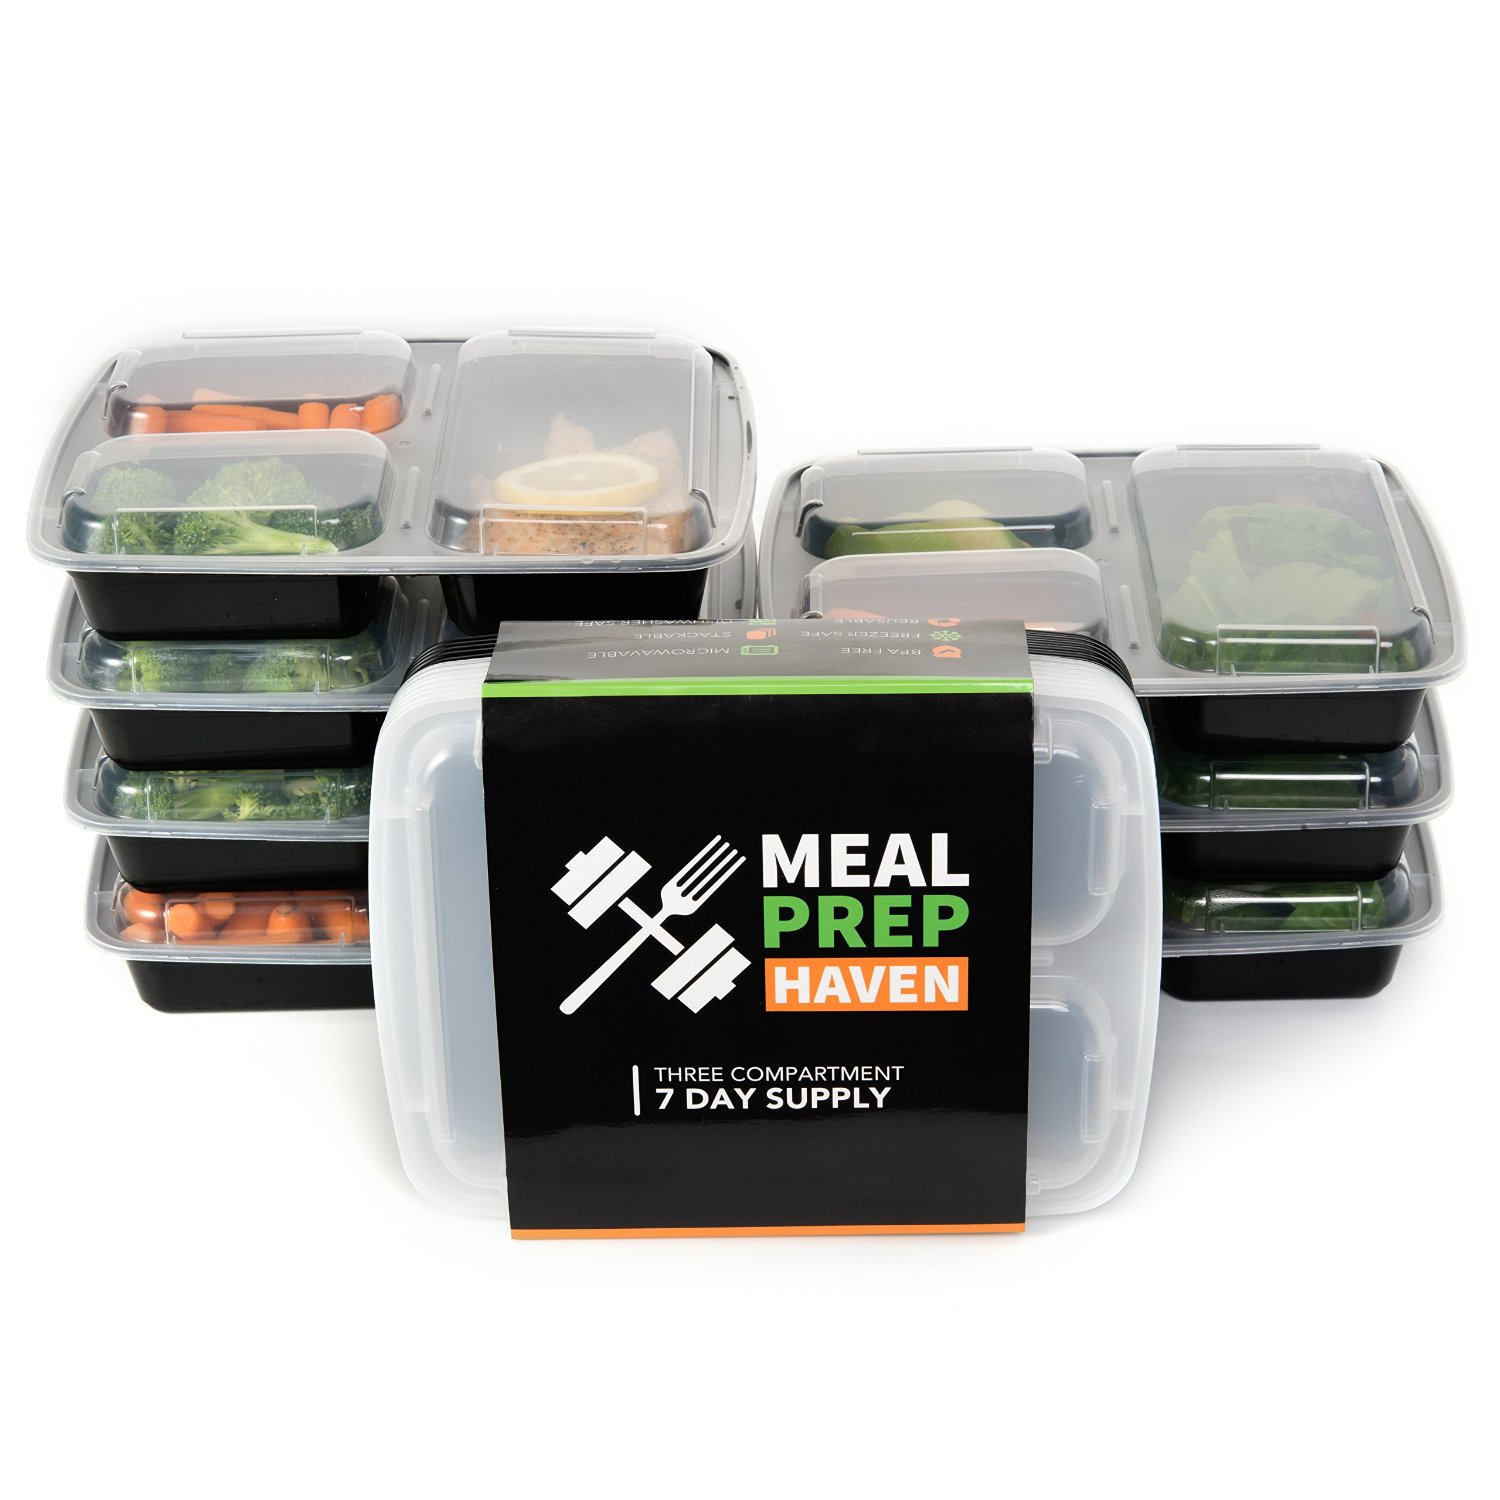 meal prep haven 3 compartment food storage containers with lids reusable microwave and dishwasher safe bento lunch box stackable set of 7